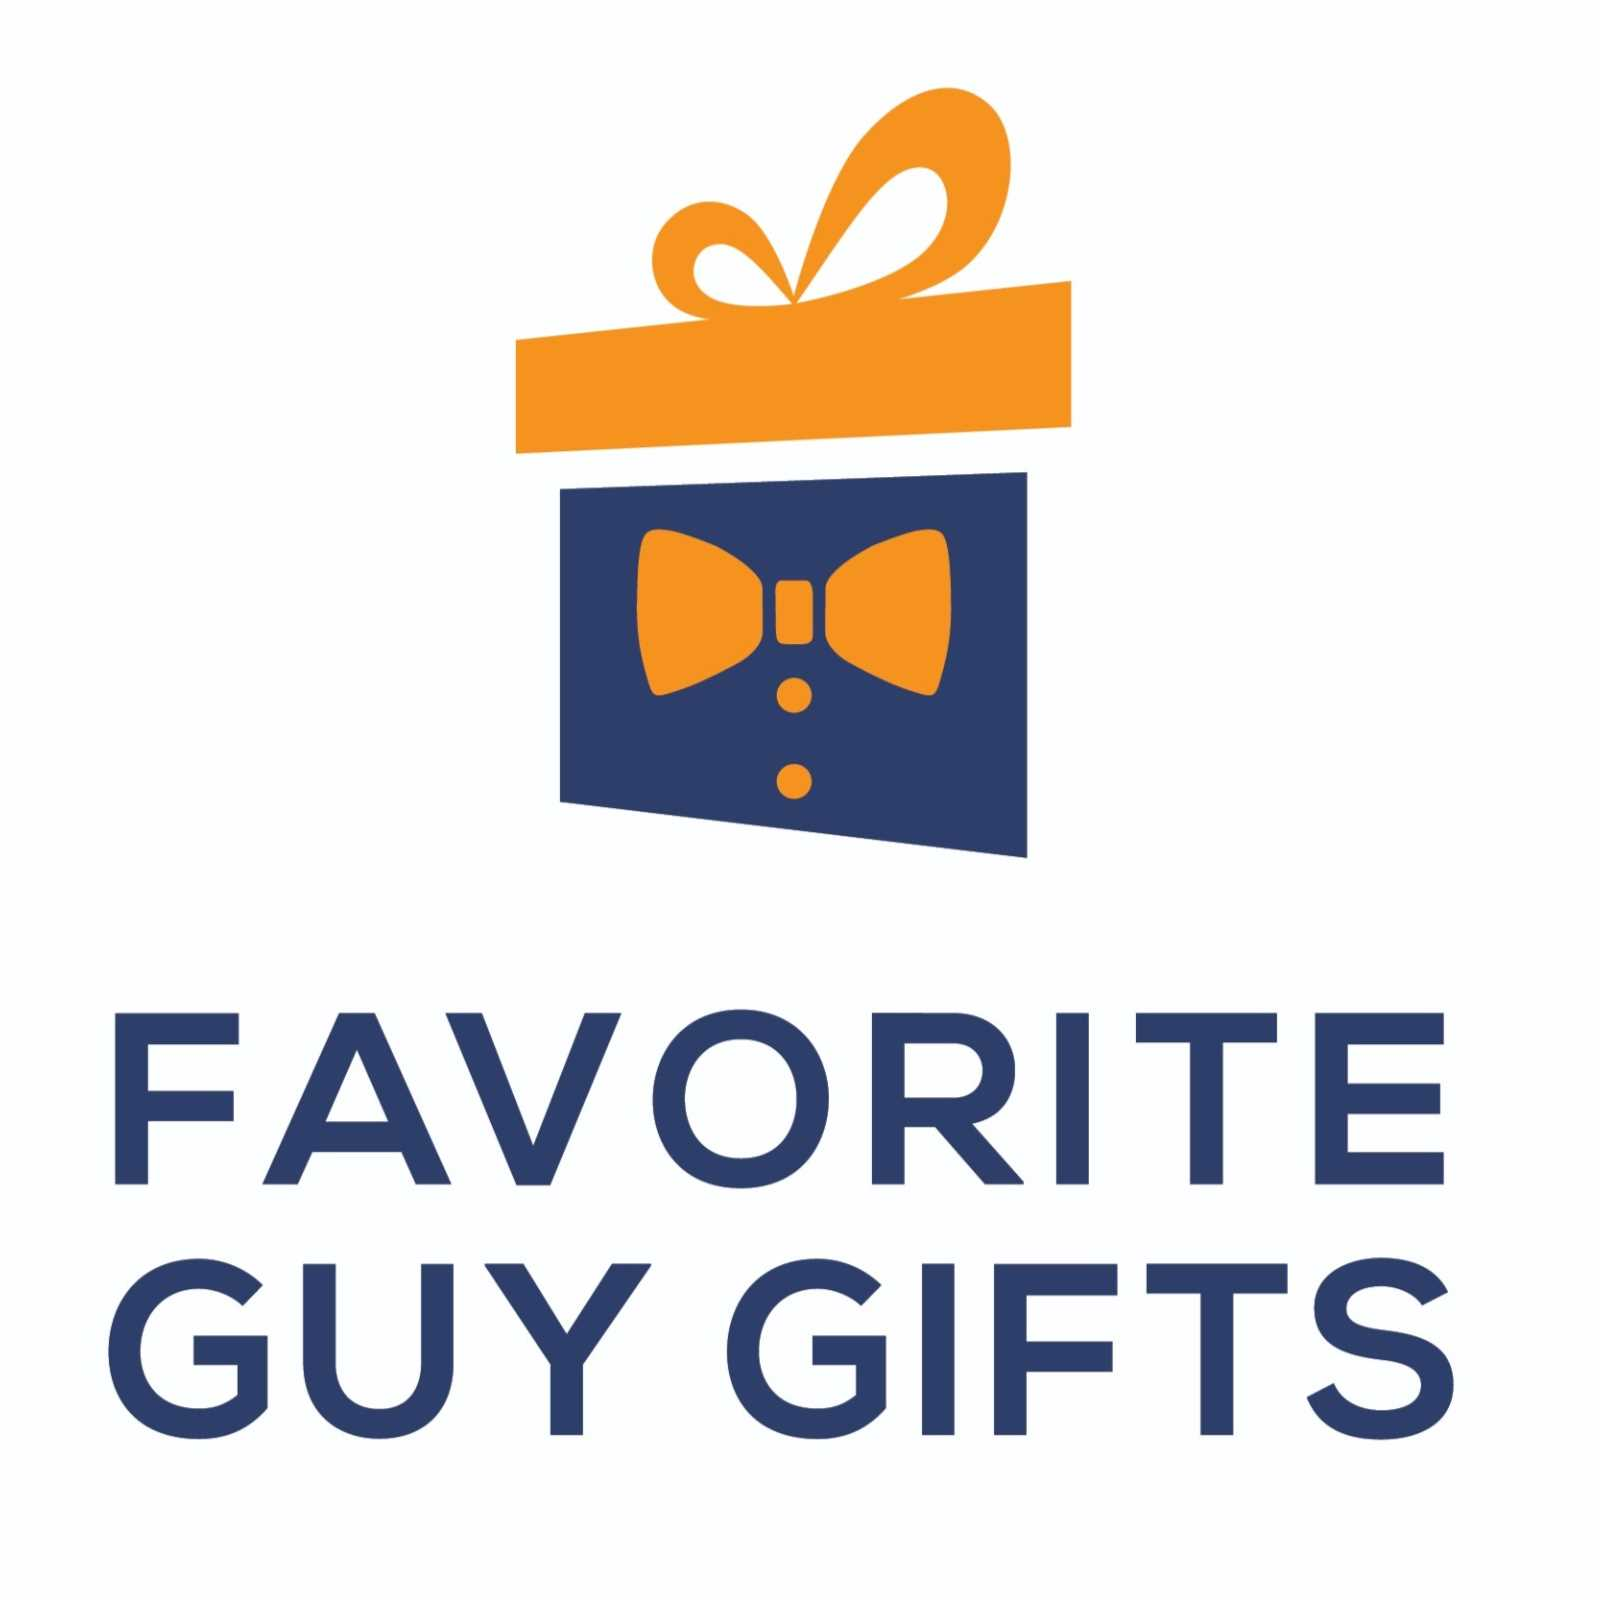 Favorite Guy Gifts - Calibrate Digital Marketing Client - Advertising Agency Springfield Missouri